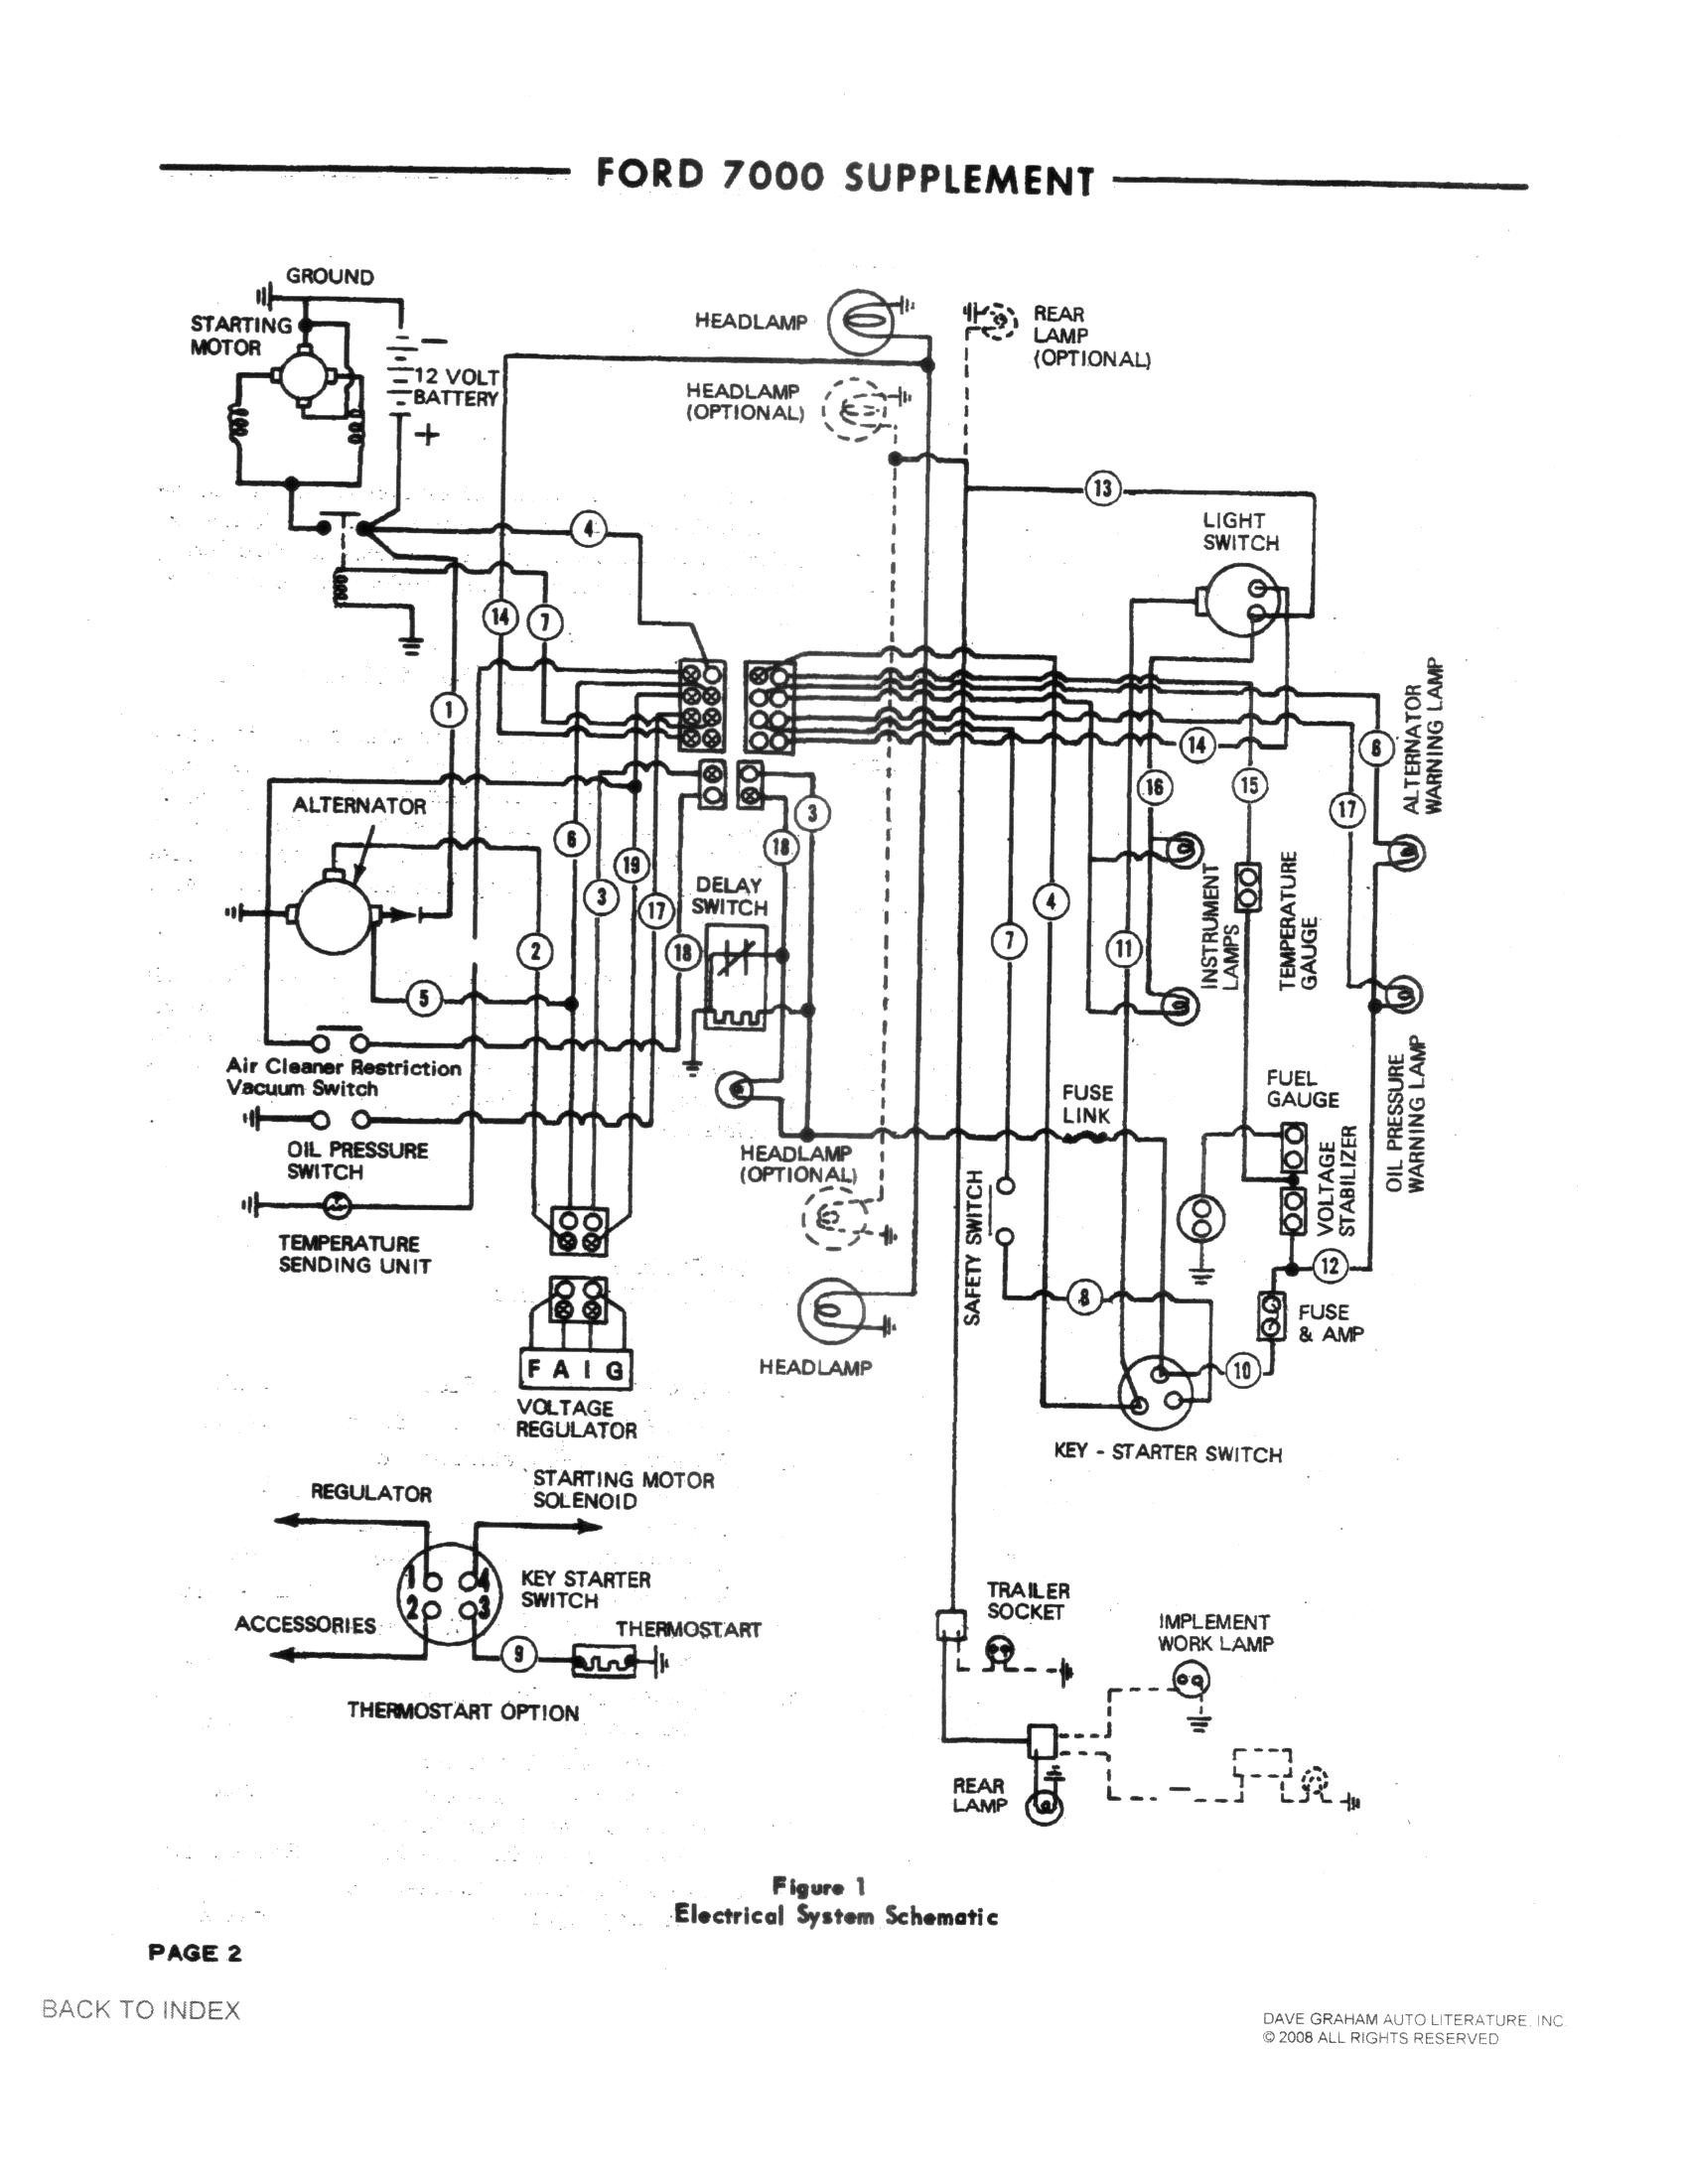 ford tractor wiring diagrams free - wiring diagrams goat-tunnel-a -  goat-tunnel-a.alcuoredeldiabete.it  al cuore del diabete